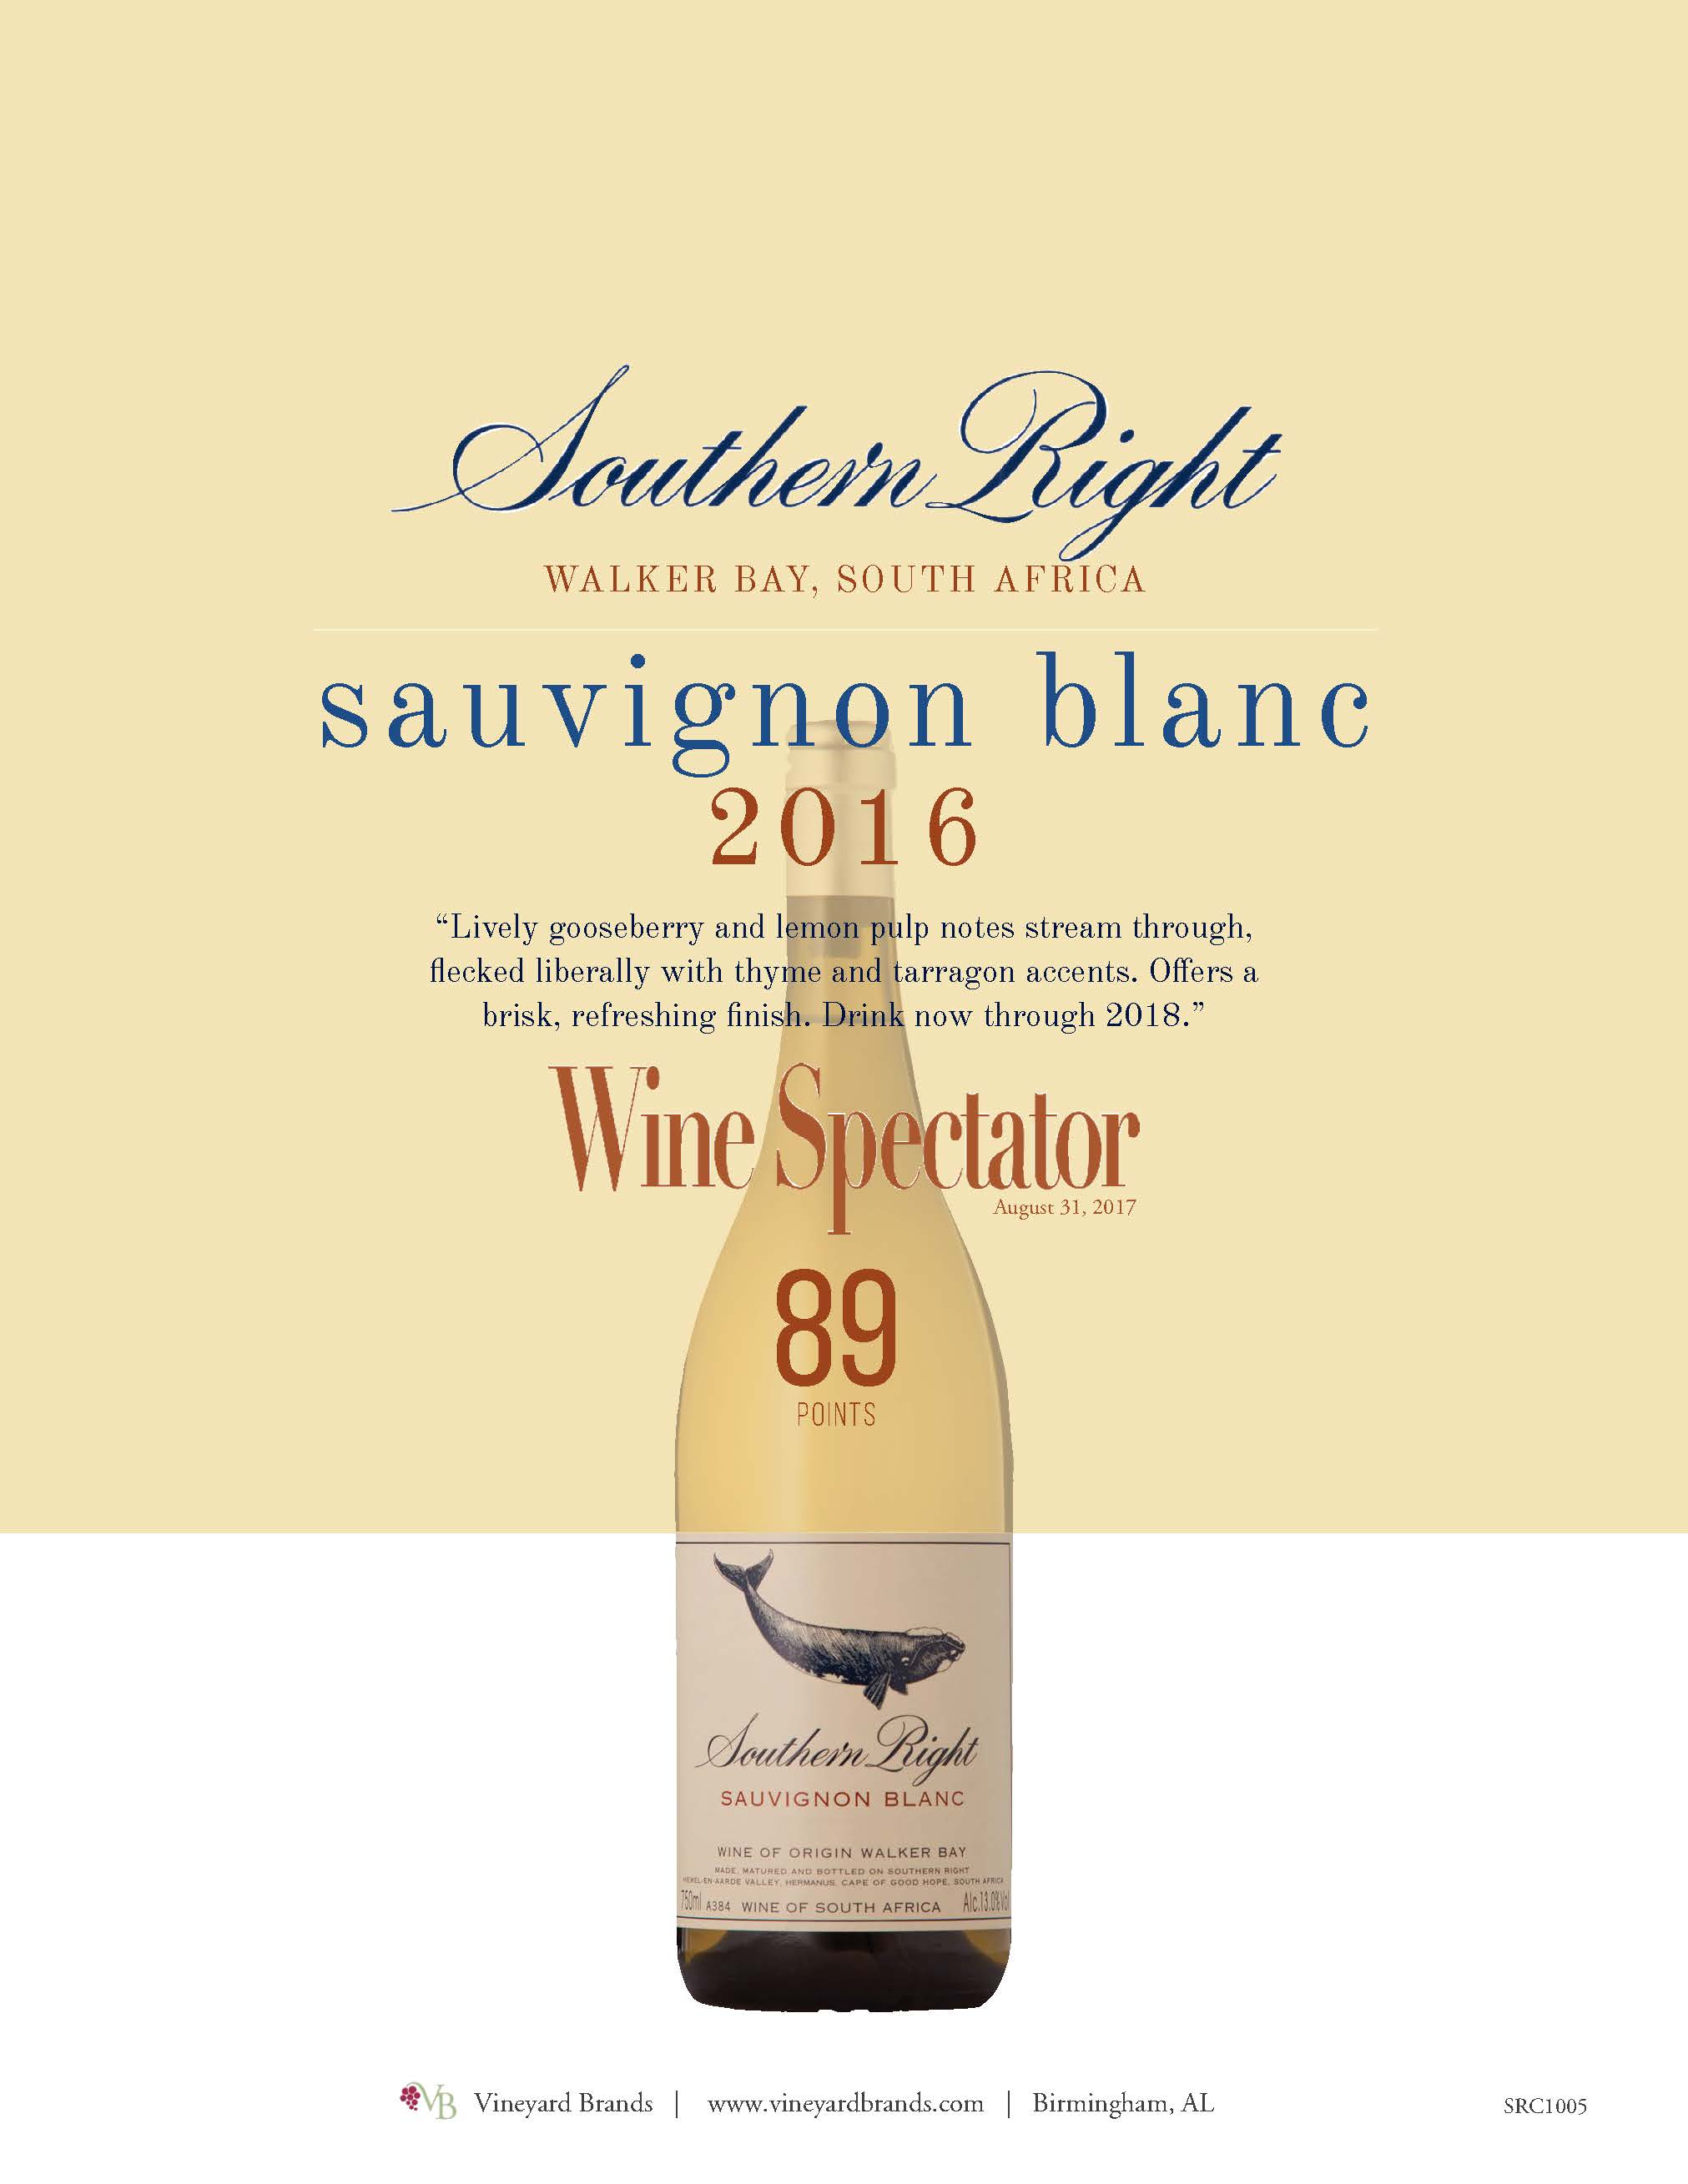 Southern Right Sauvignon Blanc 2016.jpg